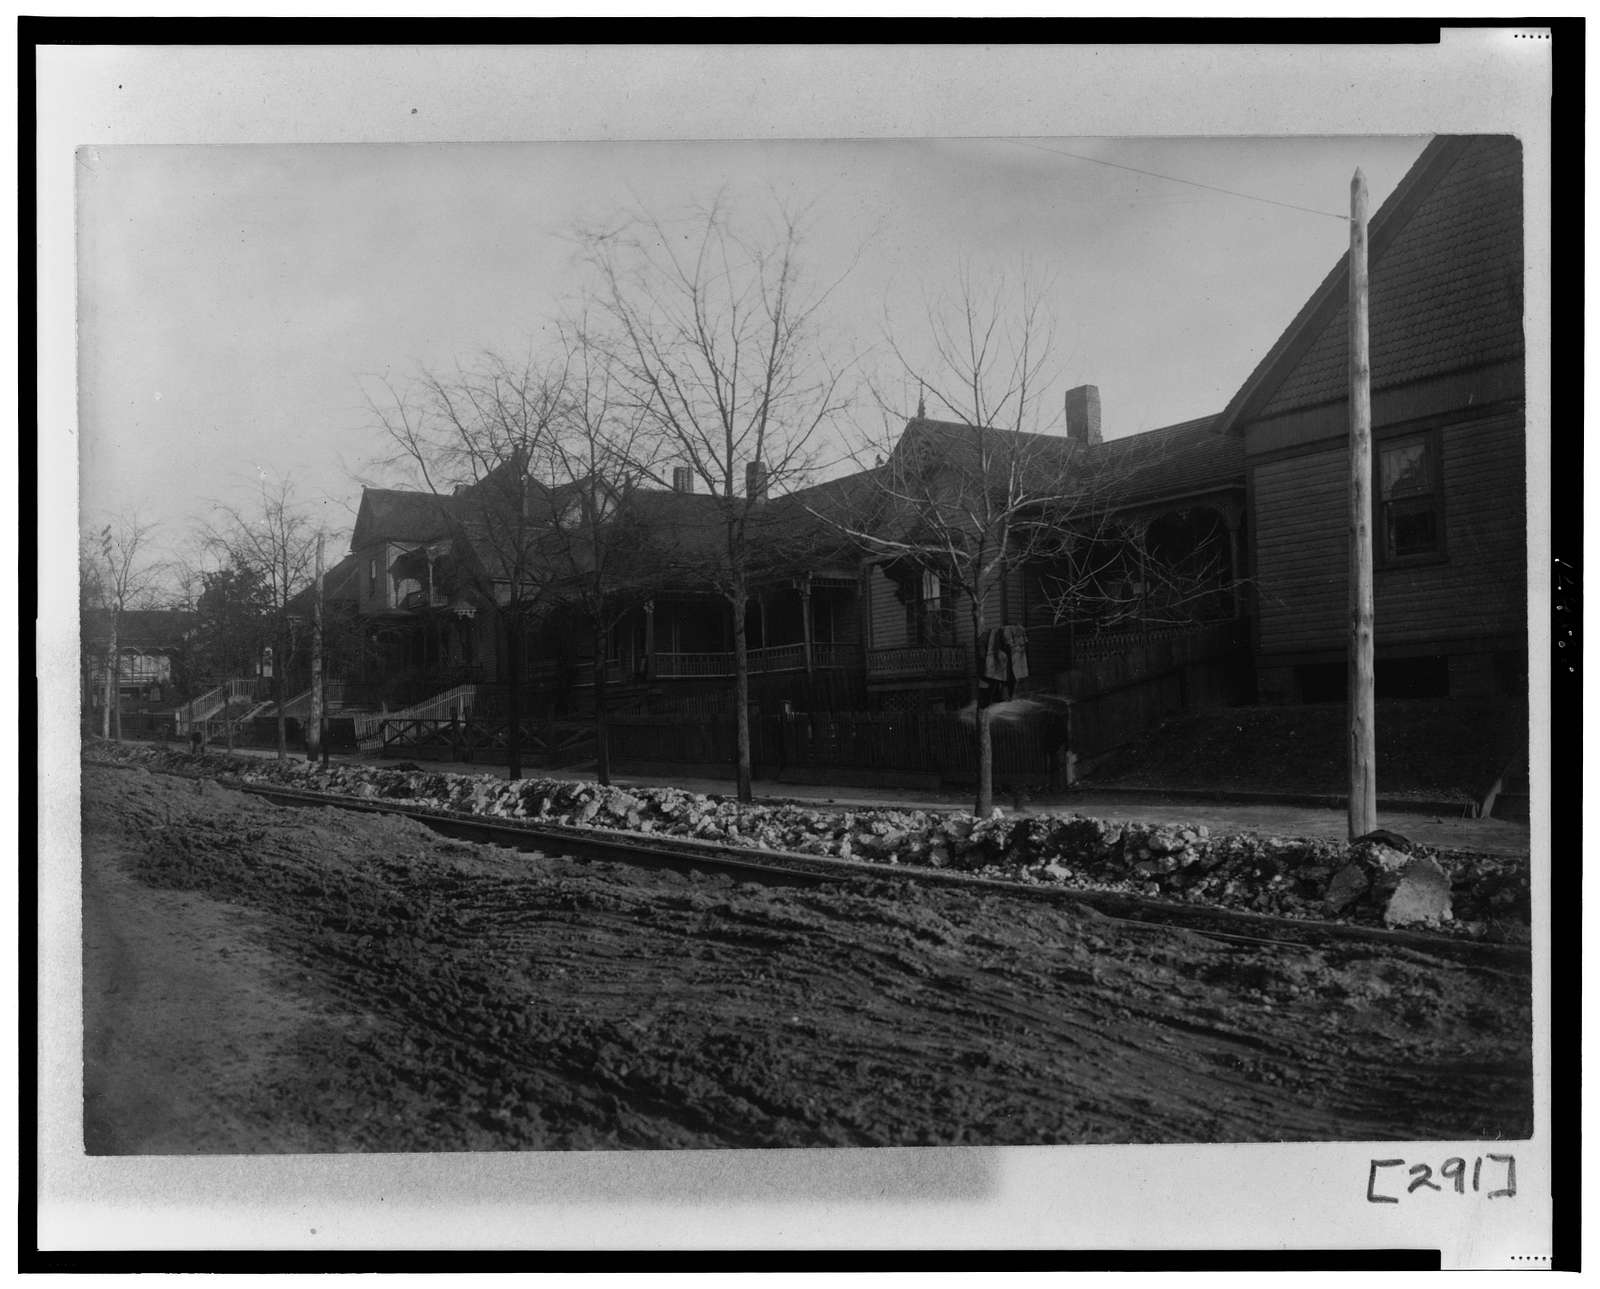 [Exterior view of houses along unpaved street in Georgia]